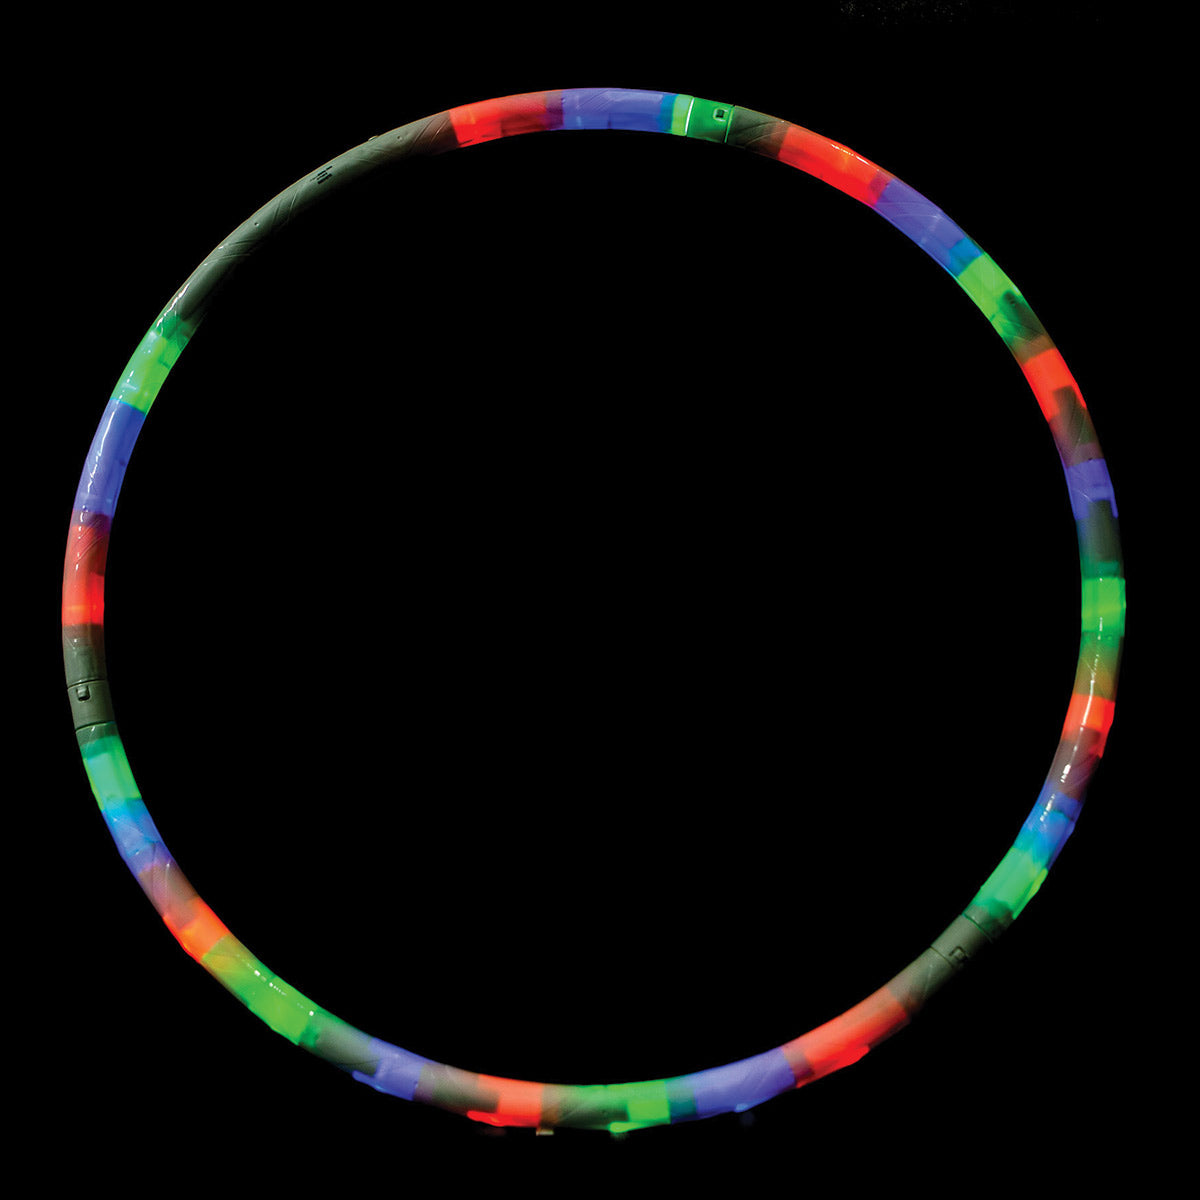 Light Up Hoola Hoop